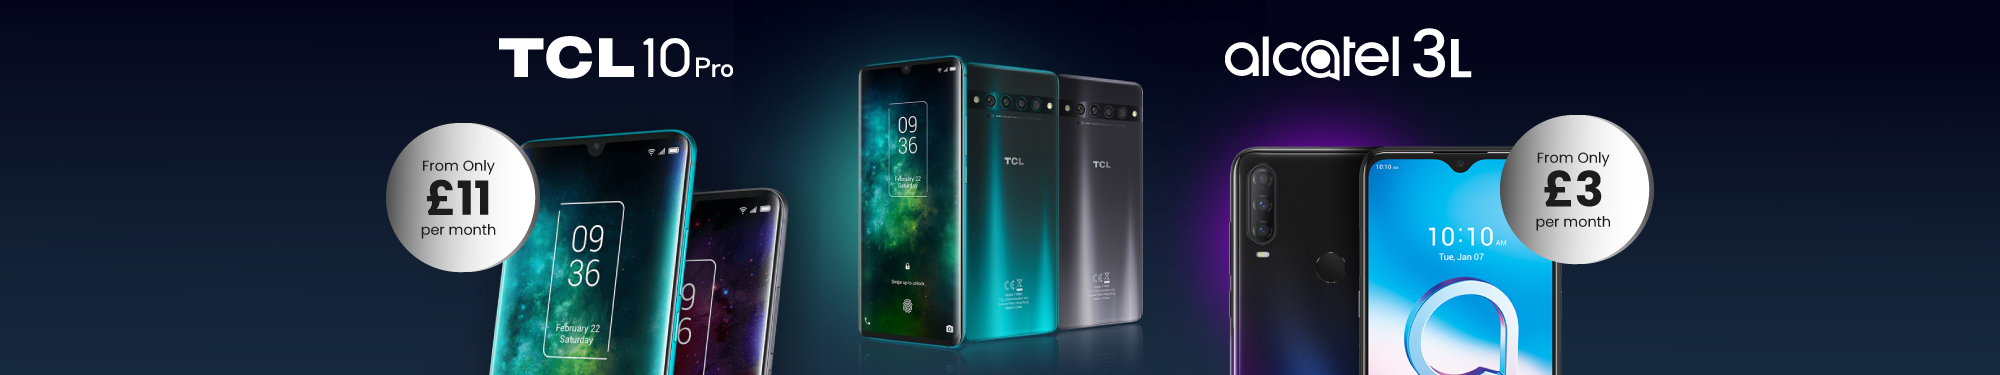 TCL Alcatel offer 2021